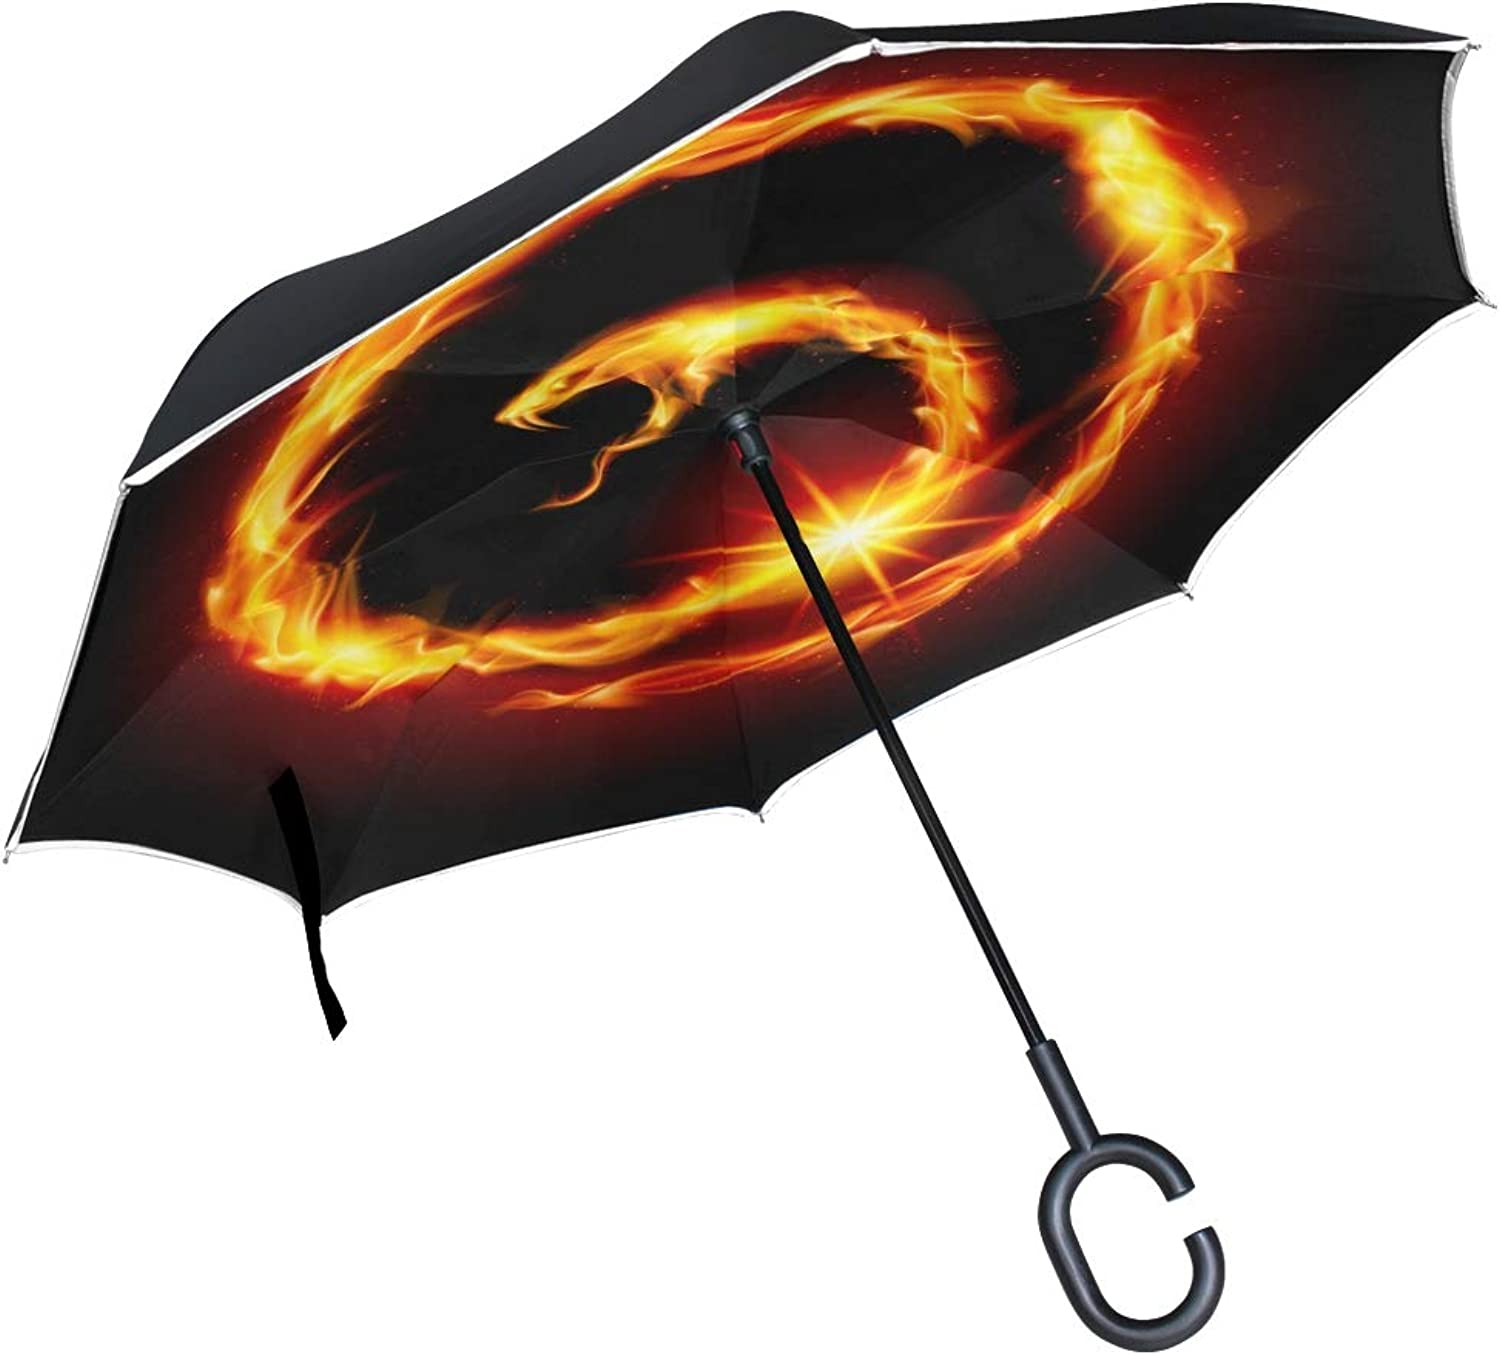 Double Layer Ingreened Abstract Spiral Snake Illustration On Black Umbrellas Reverse Folding Umbrella Windproof Uv Predection Big Straight Umbrella for Car Rain Outdoor with CShaped Handle